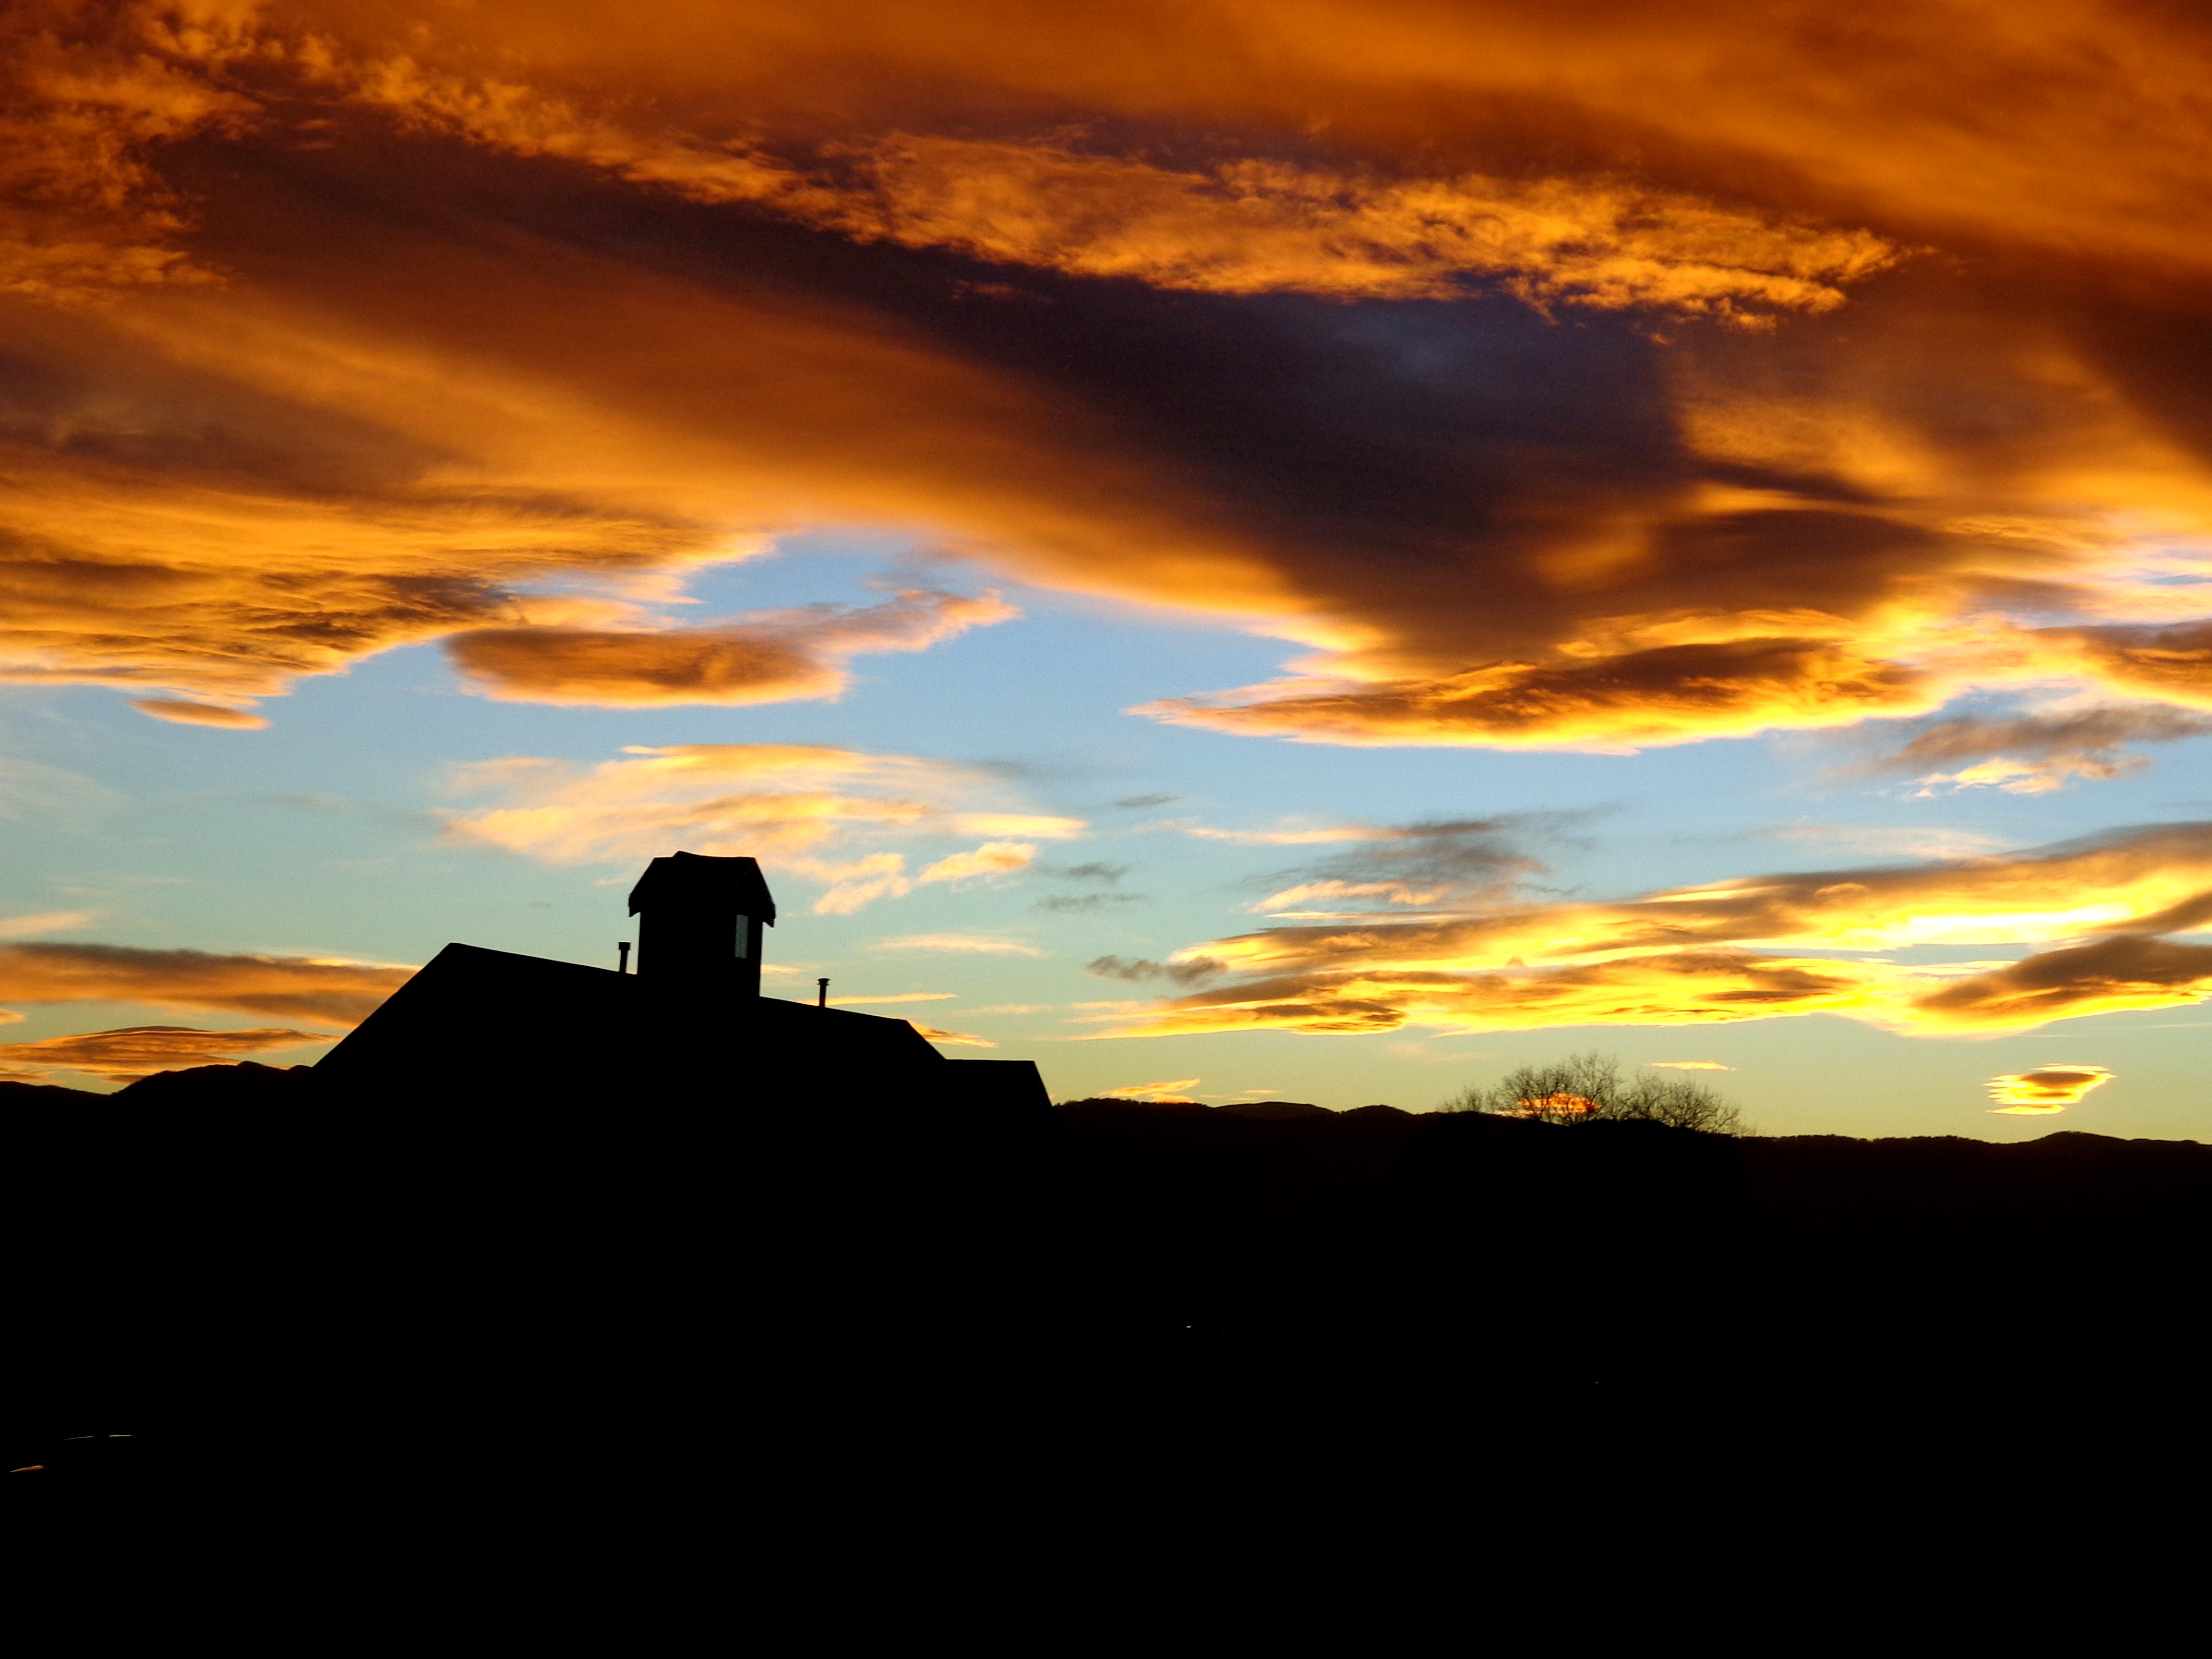 Sunset Over Country School House Picture Free Photograph